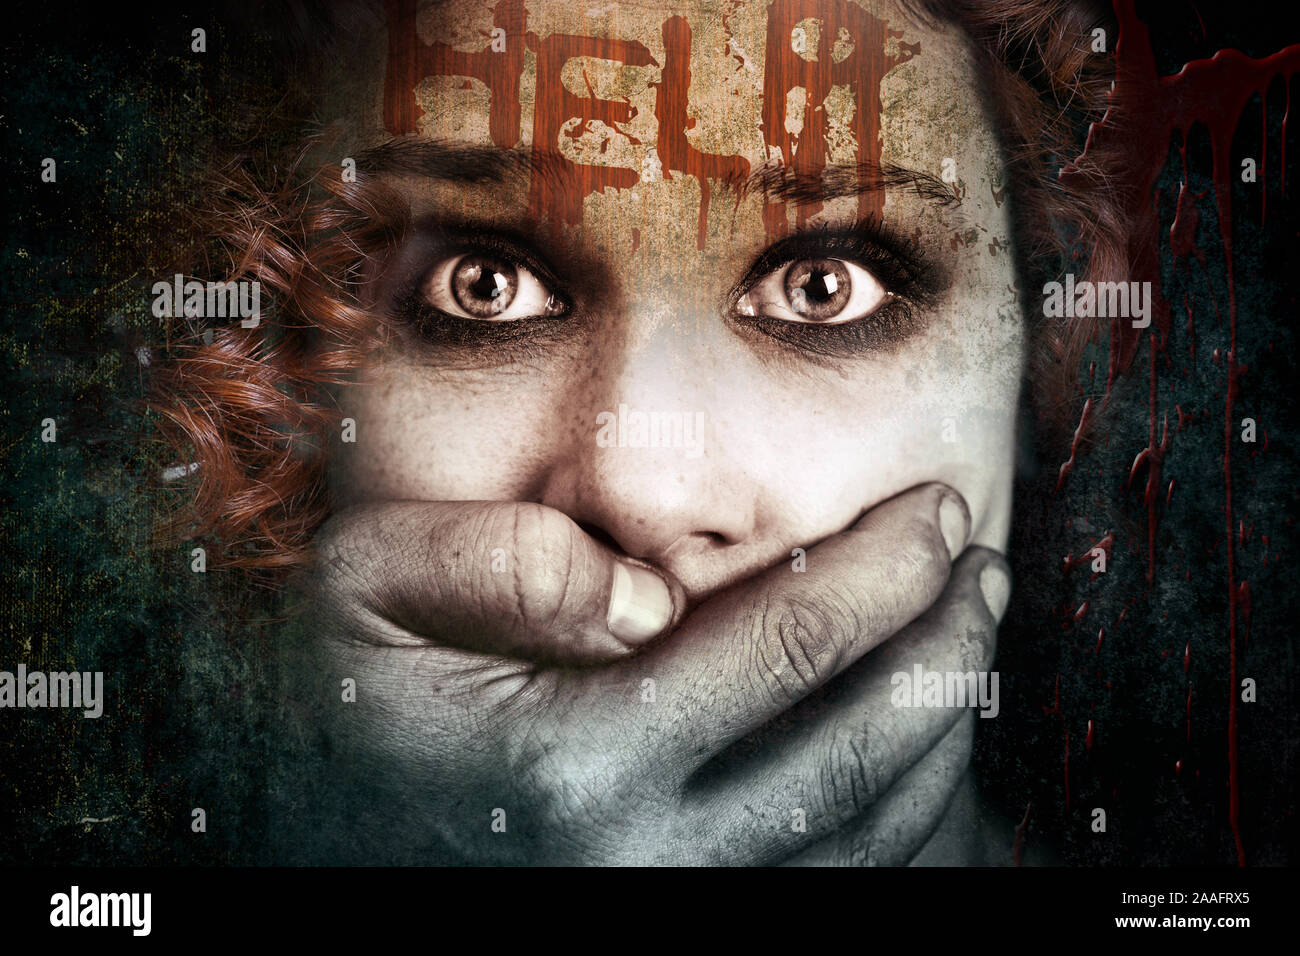 Scared abused woman, victim of physical violence Stock Photo